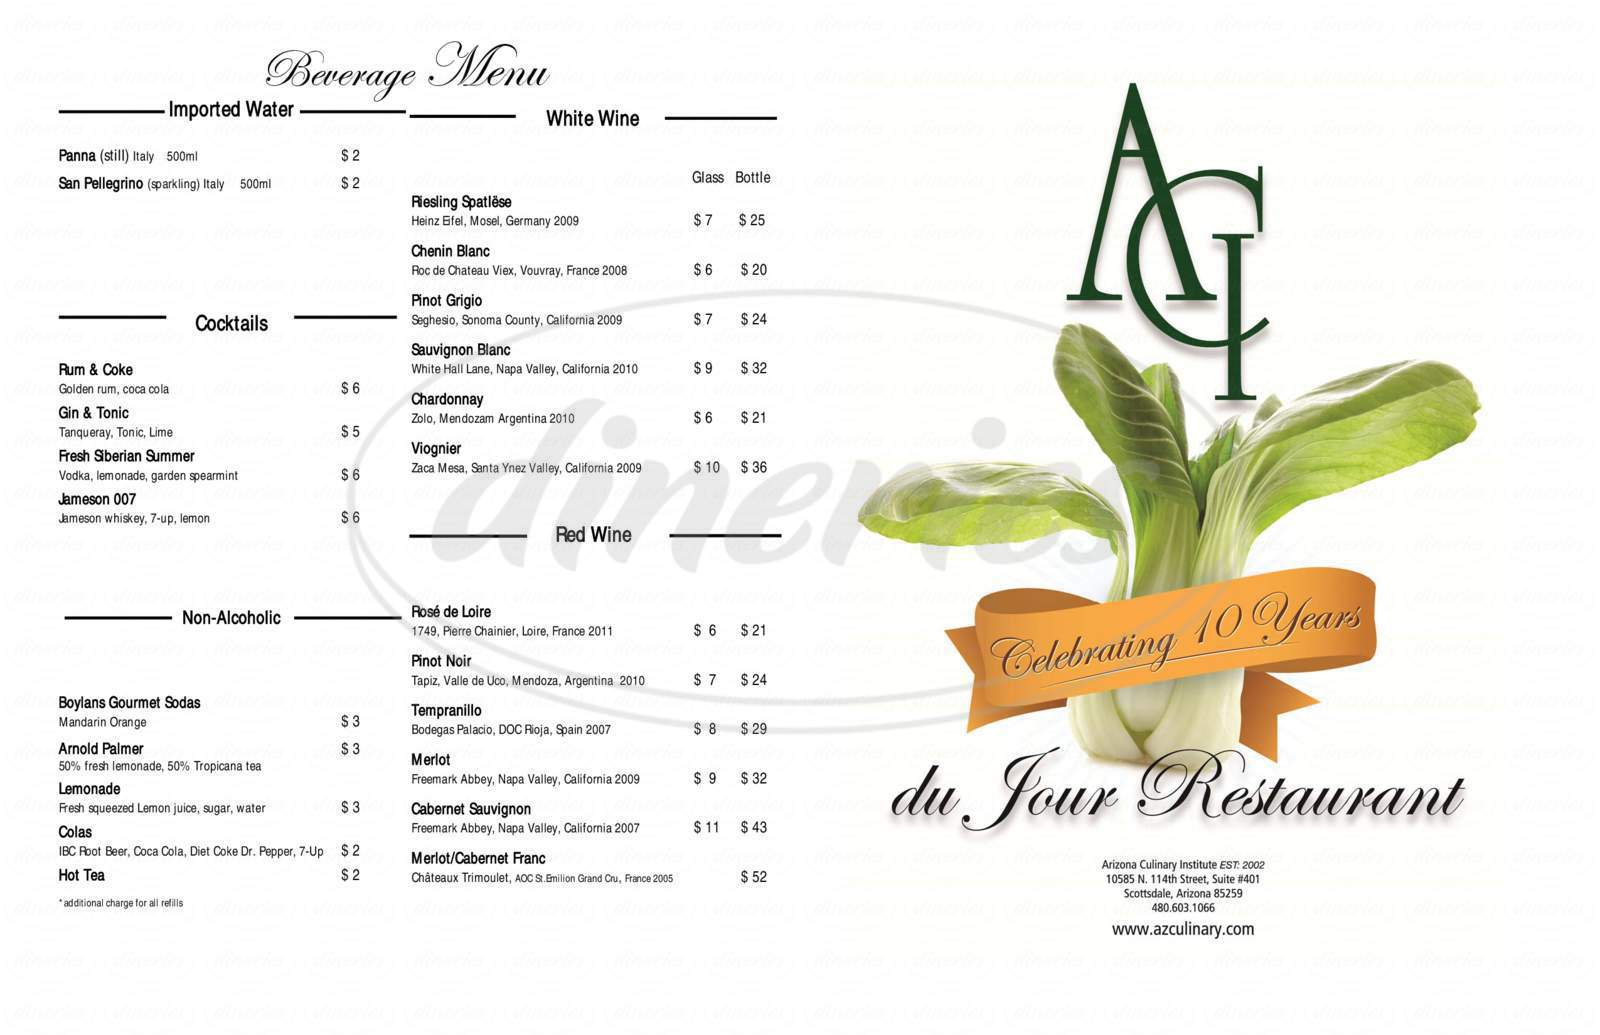 menu for Du Jour Restaurant